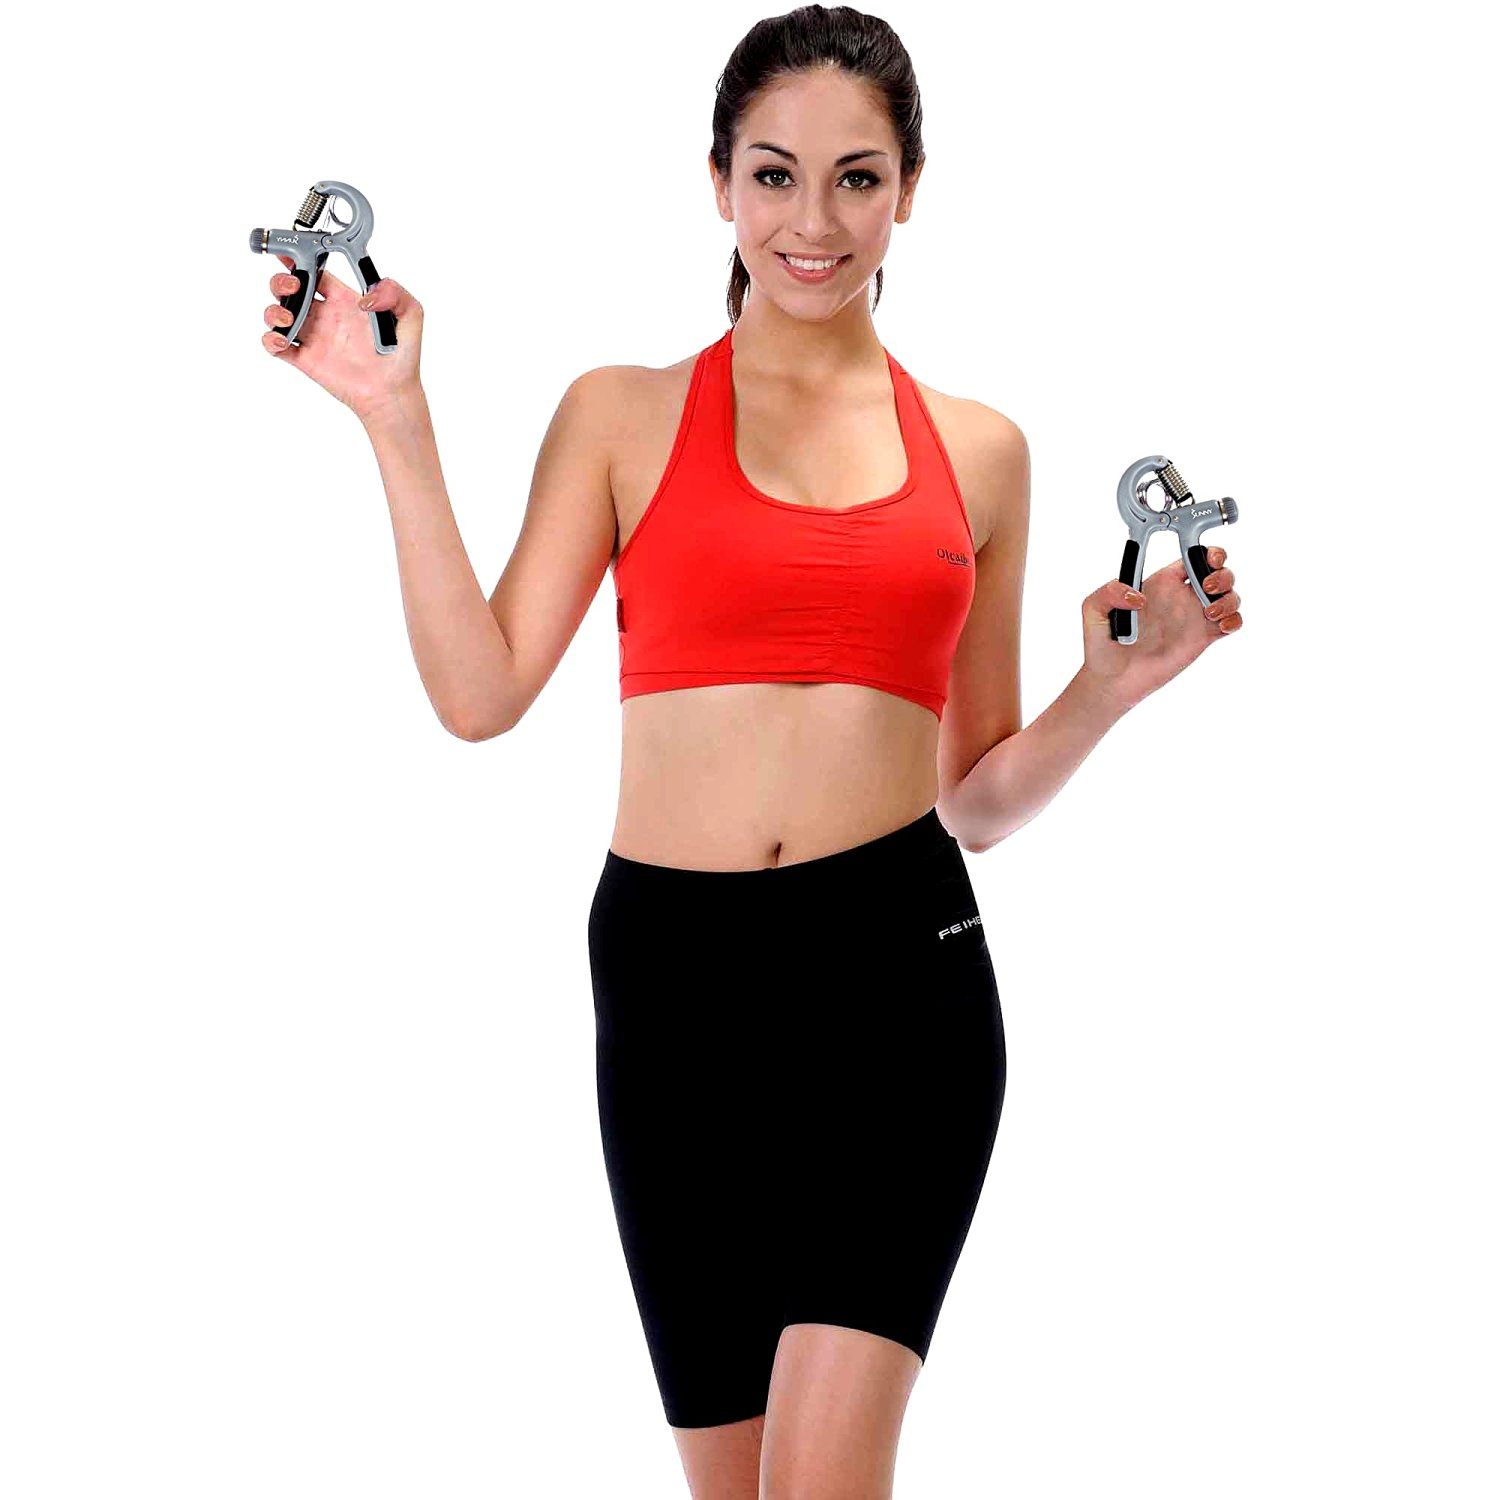 Buy Other Fitness Exercises Resbo Fitness Light Forearm Exercise Wrist Power Powerball Random In Cheap Price On M Alibaba Com